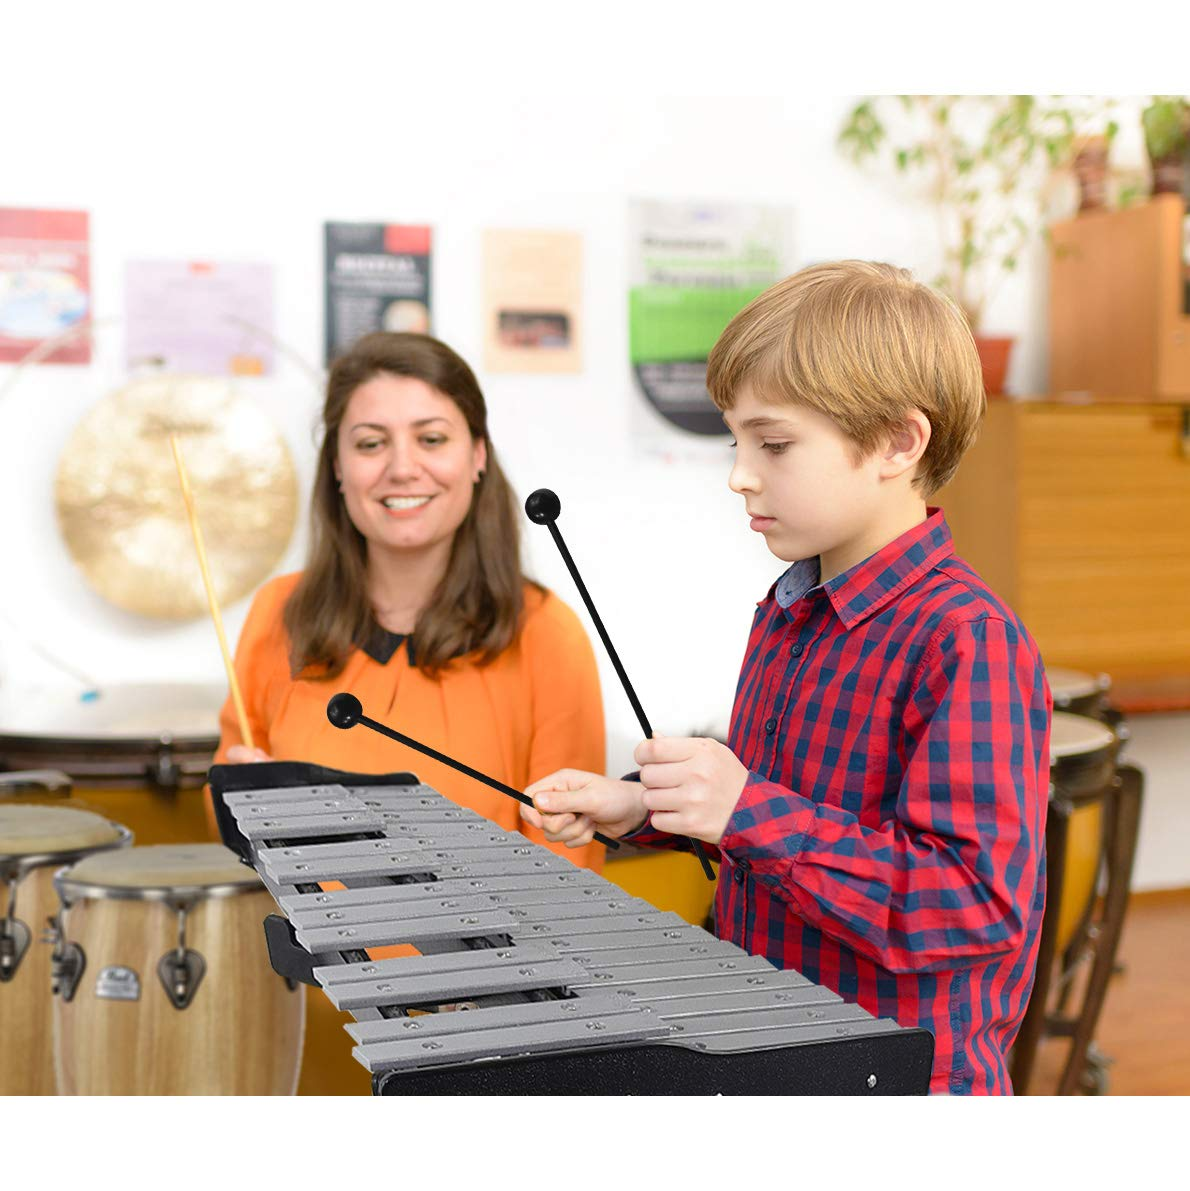 30 note Professional Glockenspiel - Metal Bell Kit Xylophone with Stand, Note Holder and Carrying Bag by inTemenos (Image #2)